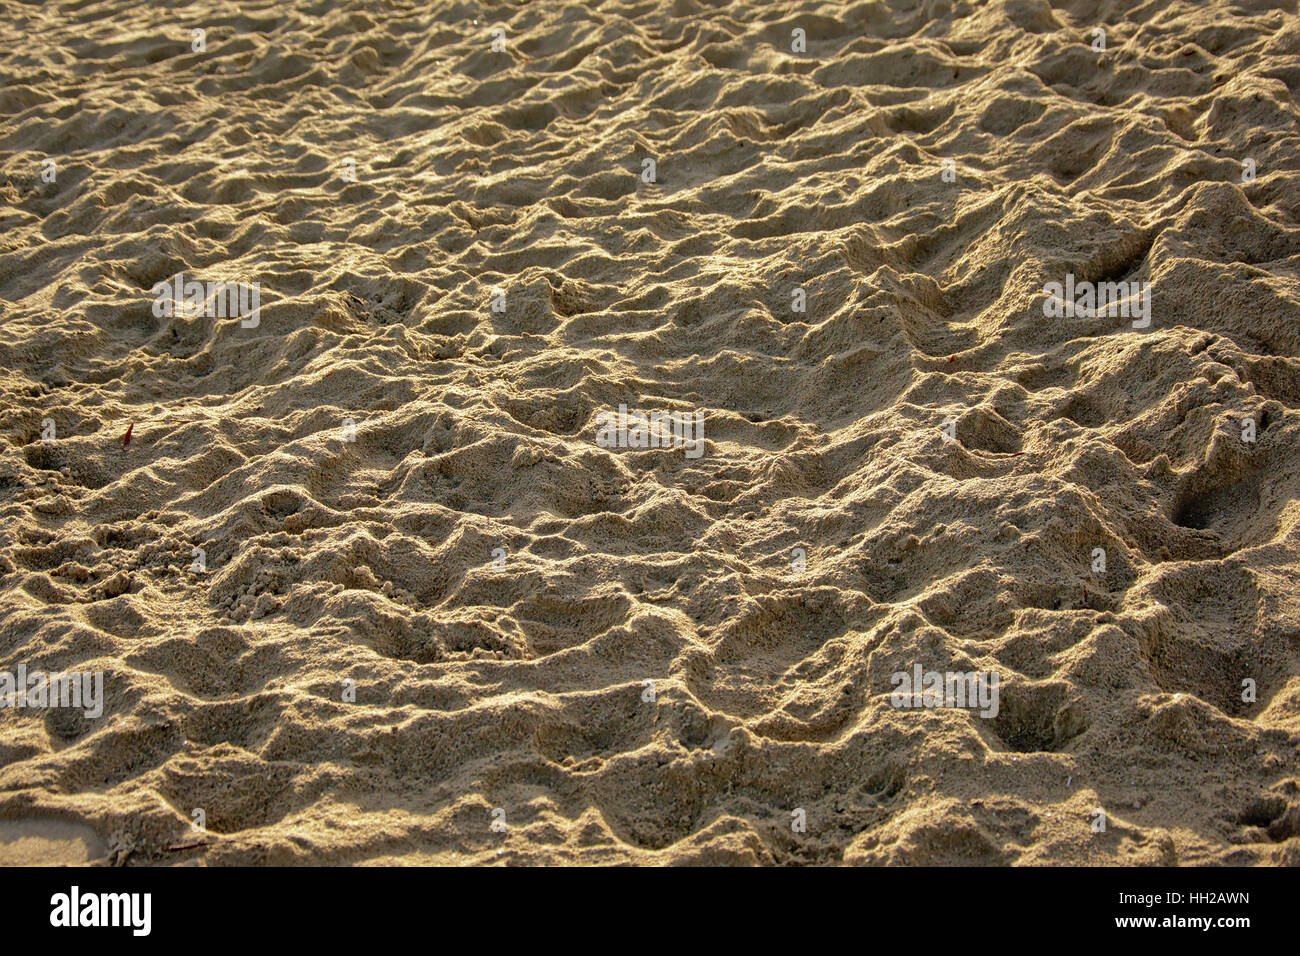 Light and shadow play in the sand background - Stock Image